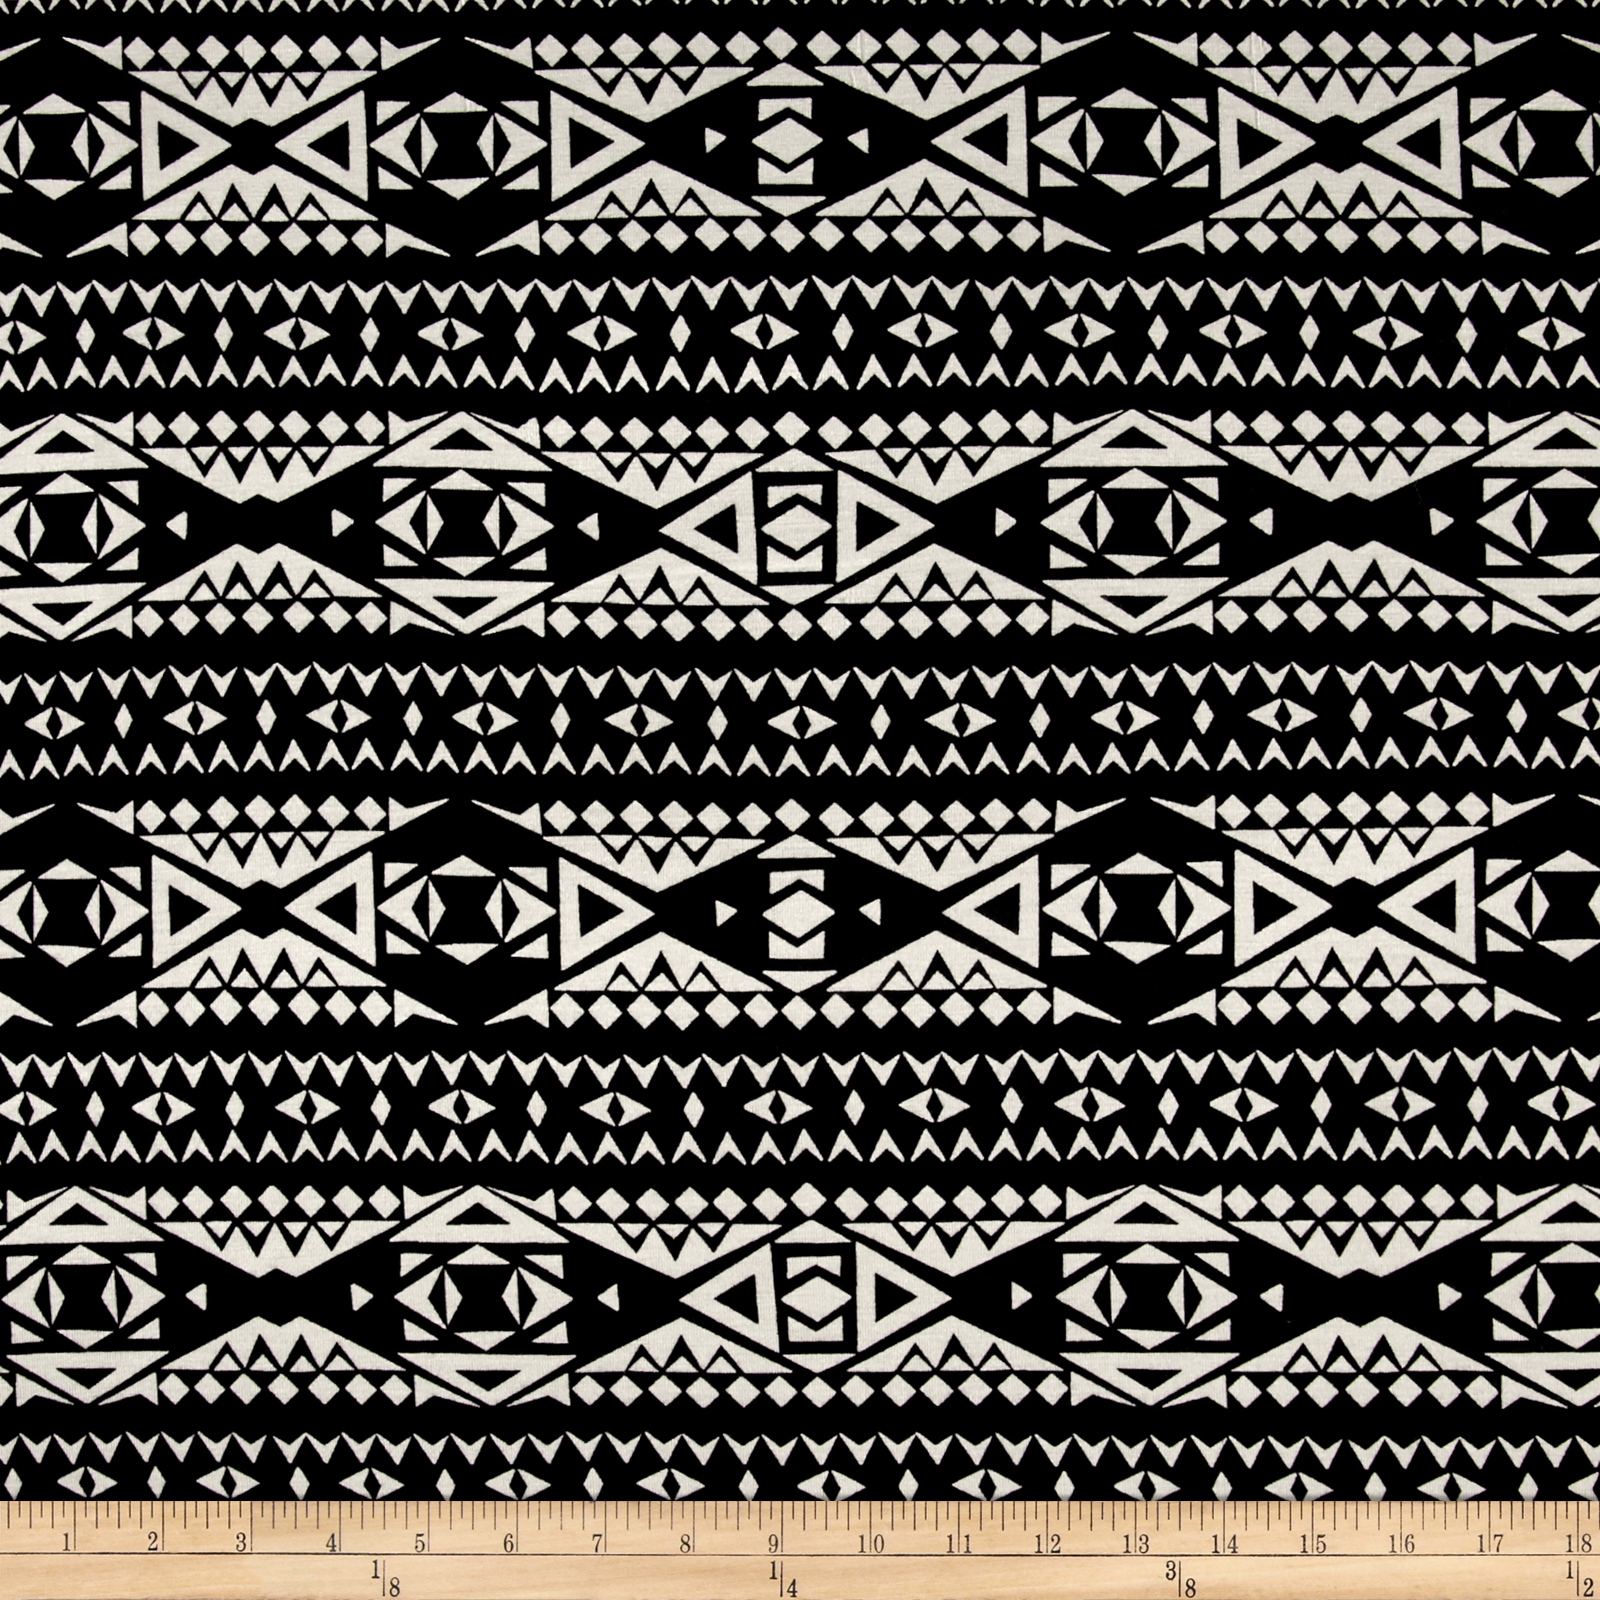 Rayon Jersey Knit Diamond Tribe - Black/white Fabric